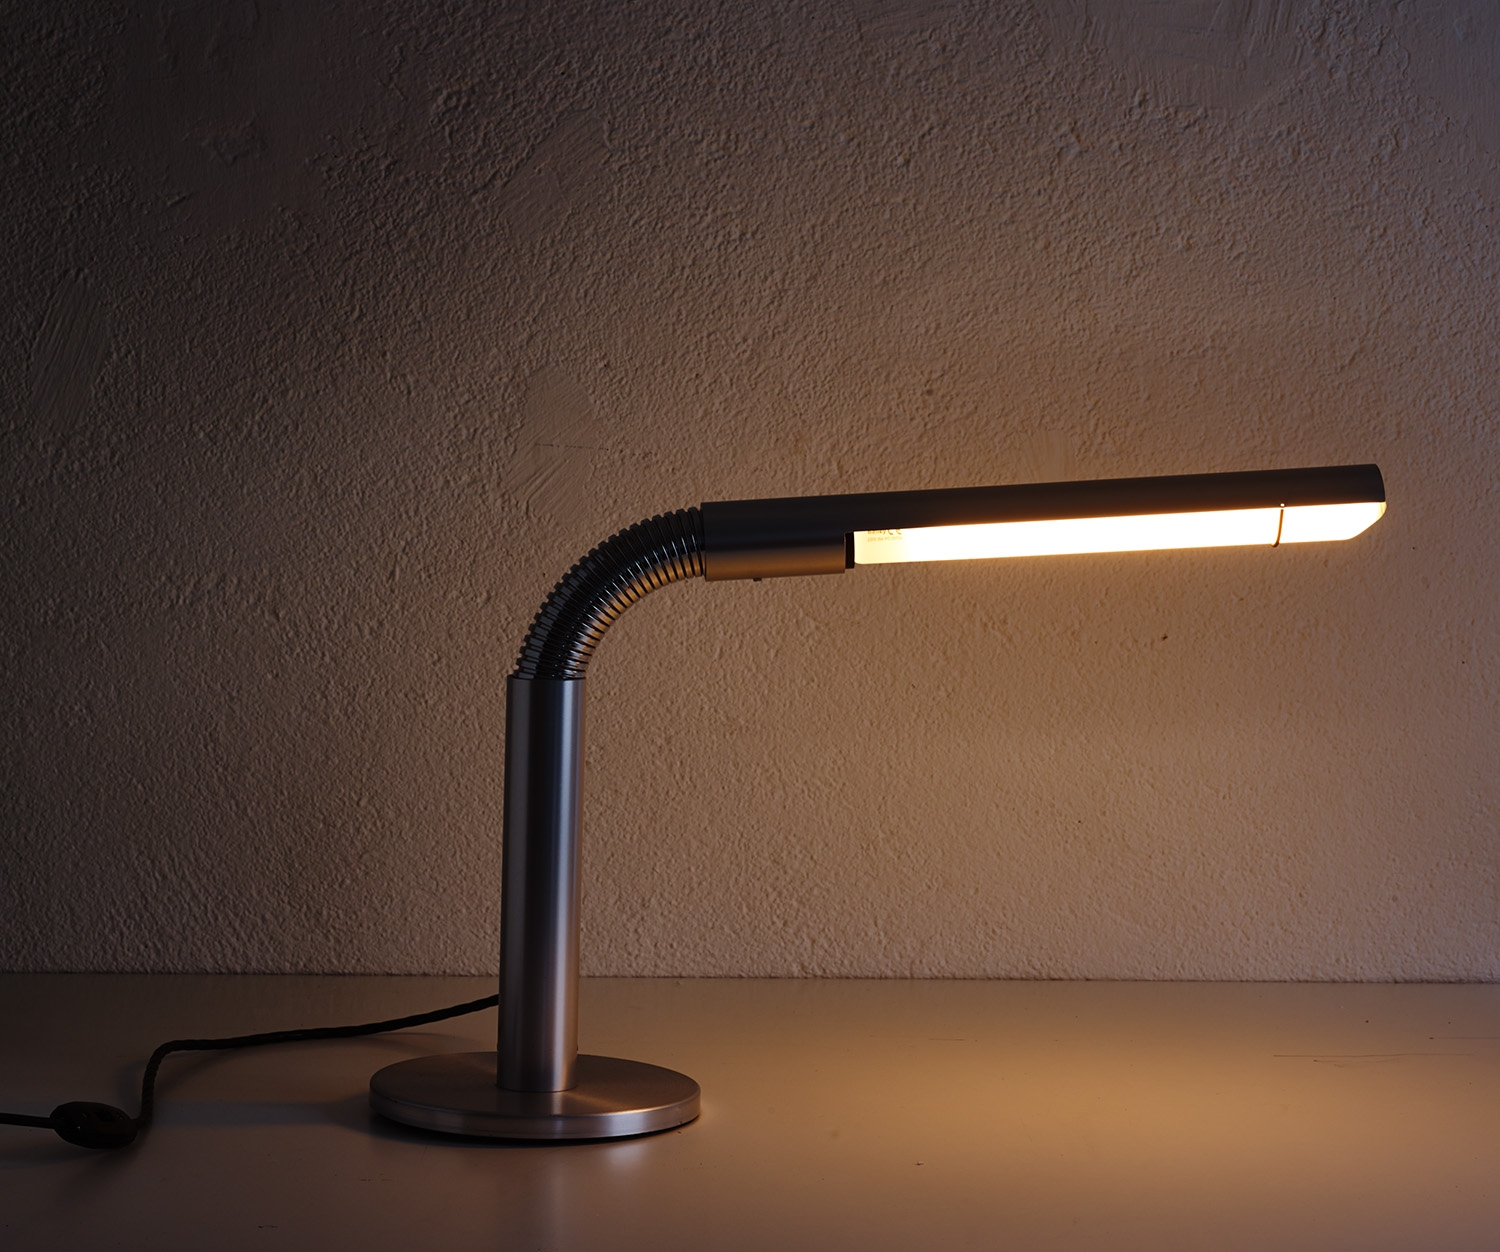 lampe-table-s1-baltensweiler-image-06